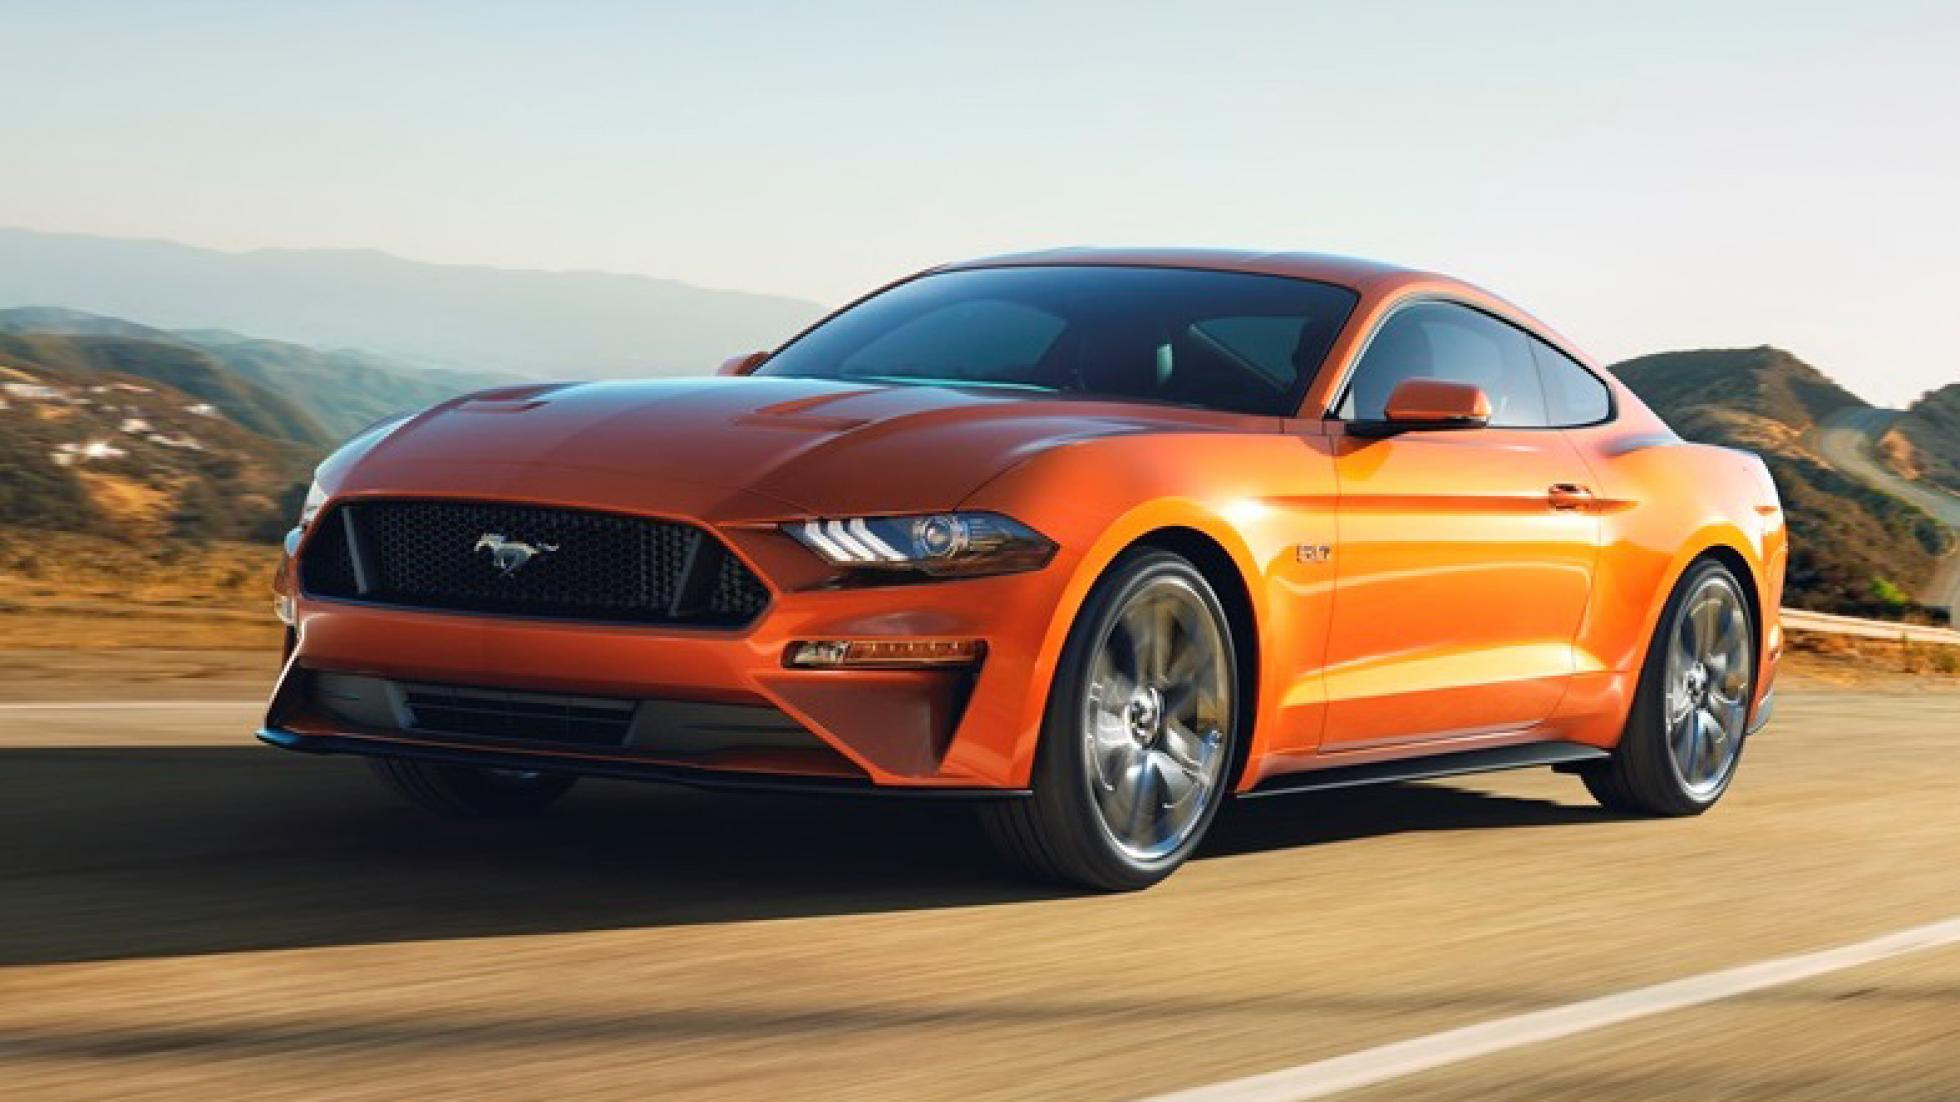 The ford mustang is now faster to 96kph than a 911